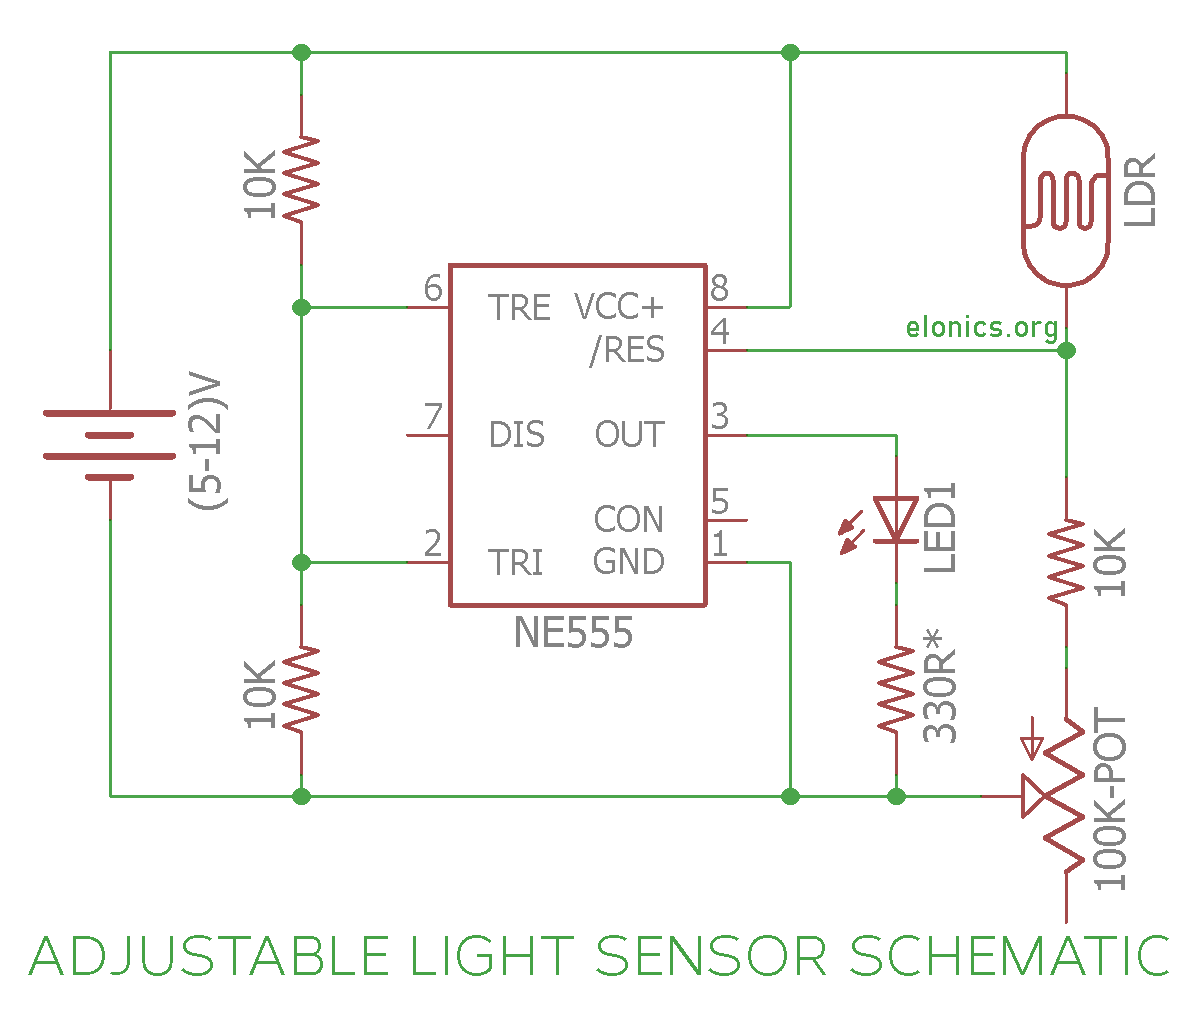 Photocell Sensor Circuit Diagram 555 Online Manuual Of Wiring Light Using Ldr And Timer Ic With Adjustable Rh Elonics Org A 2wire